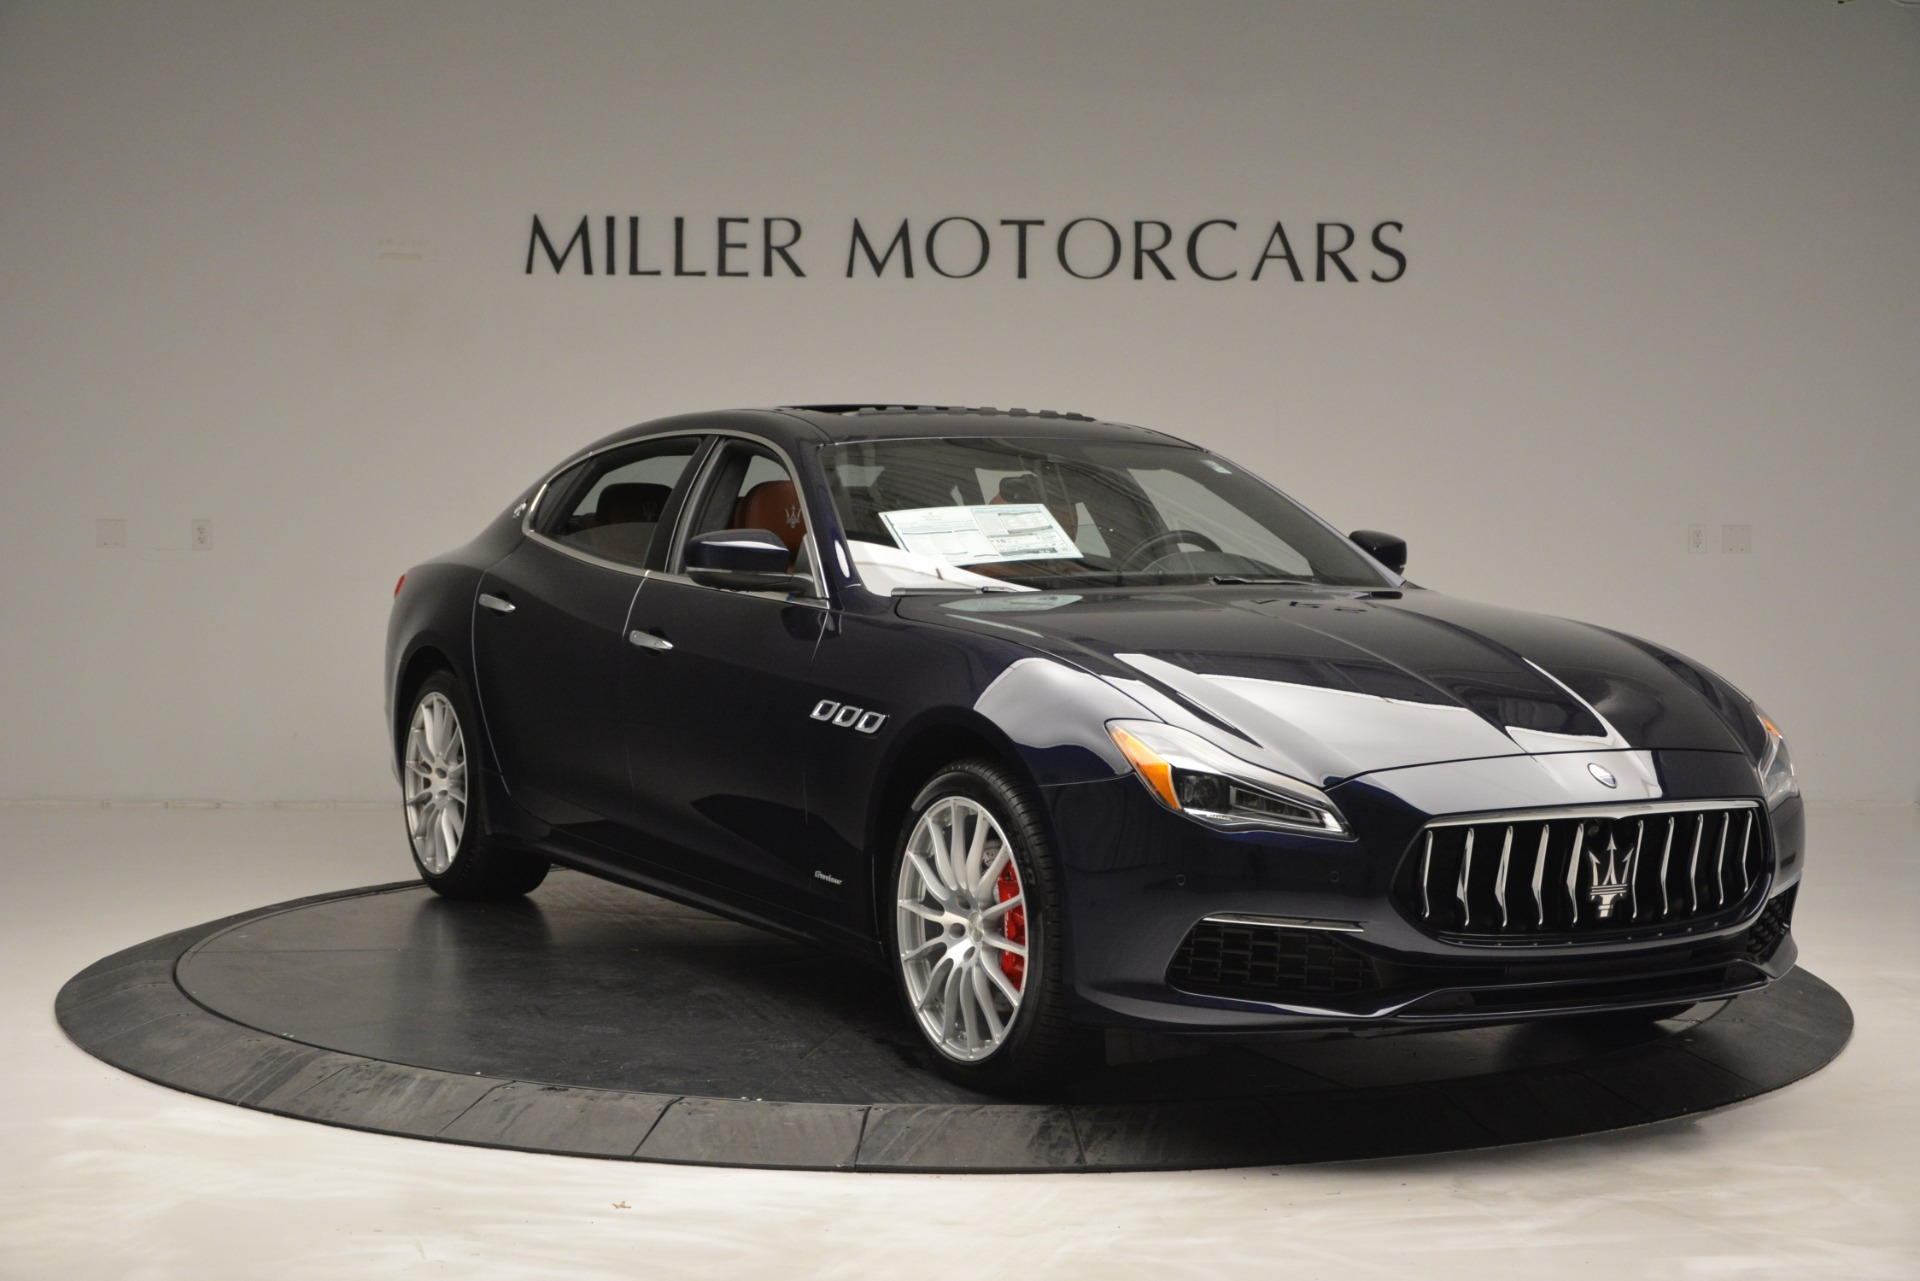 New 2019 Maserati Quattroporte S Q4 GranLusso For Sale In Westport, CT 2620_p11